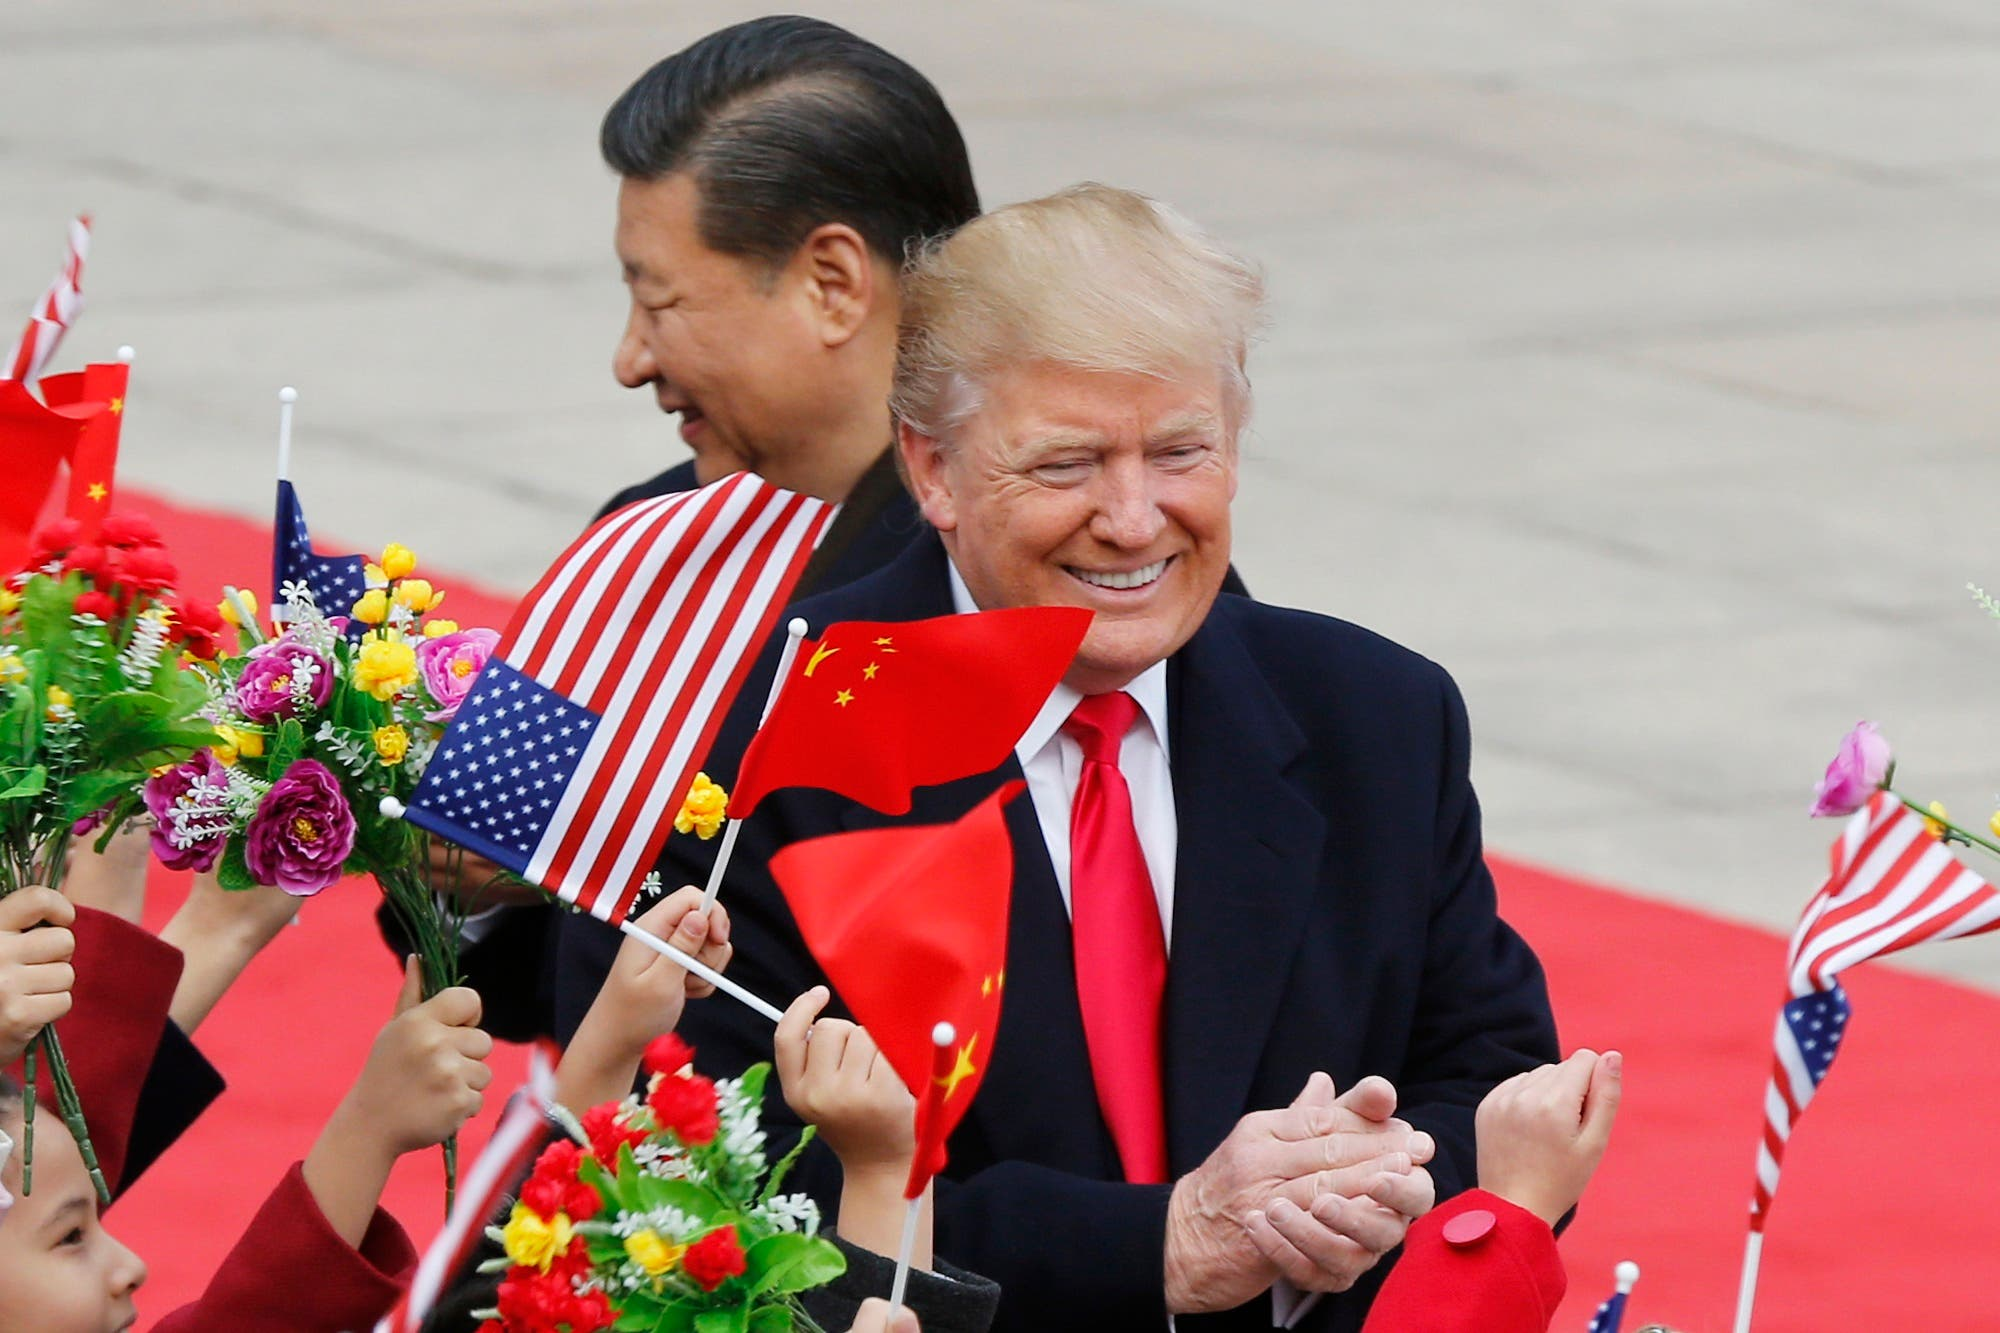 Trump and Xi Jinping greeted by children during a welcome ceremony in Beijing on Nov. 9, 2017. (AP)